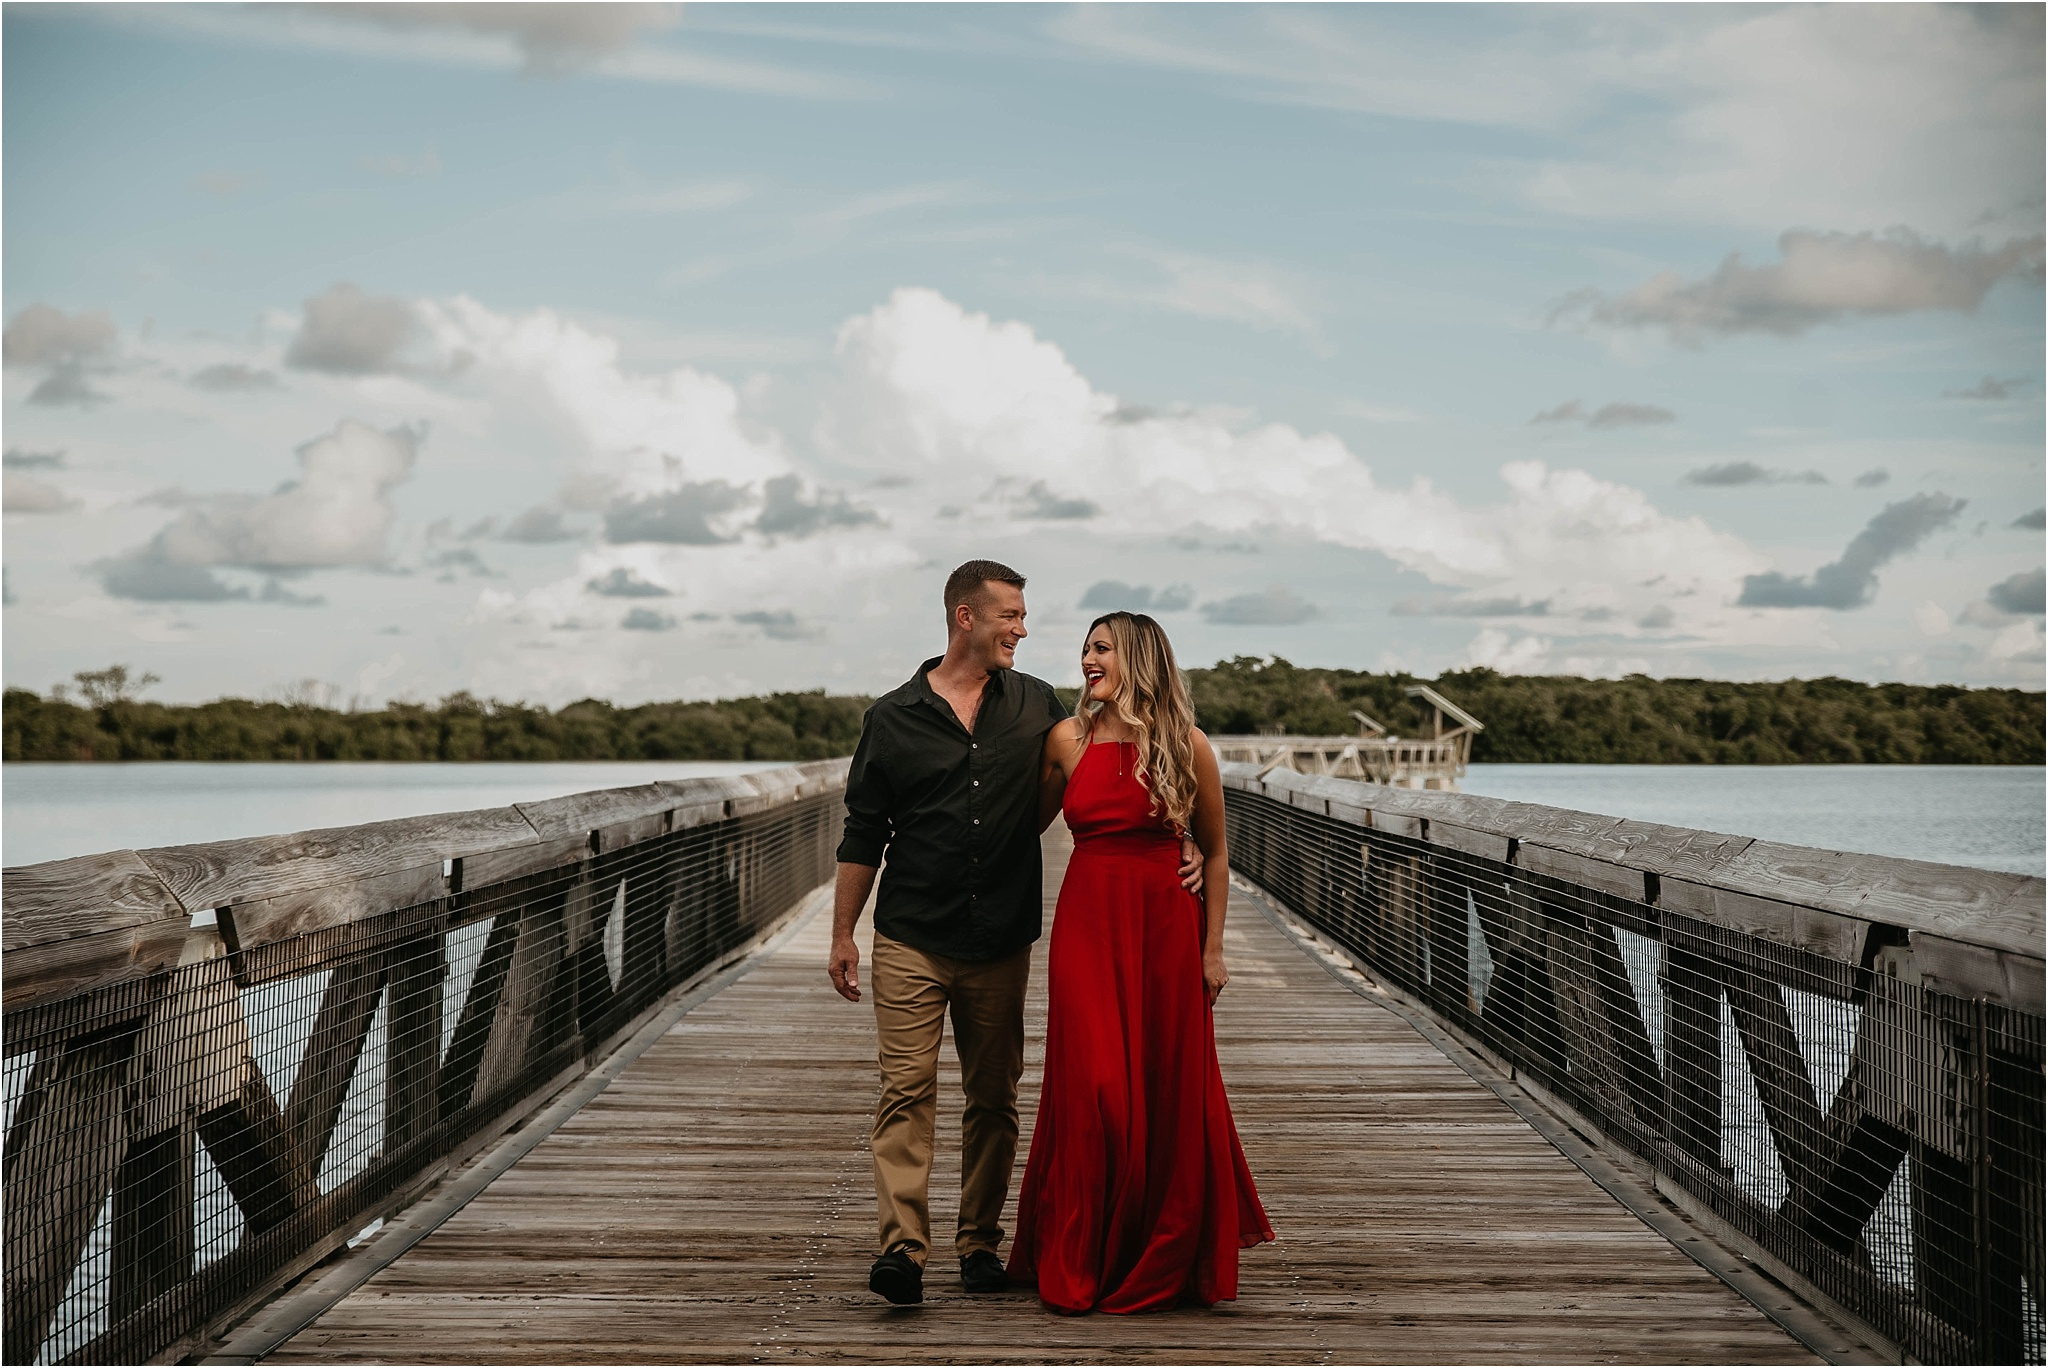 JohnDMacArthur-Beach-State-Park-engagement-photographer_0001.jpg